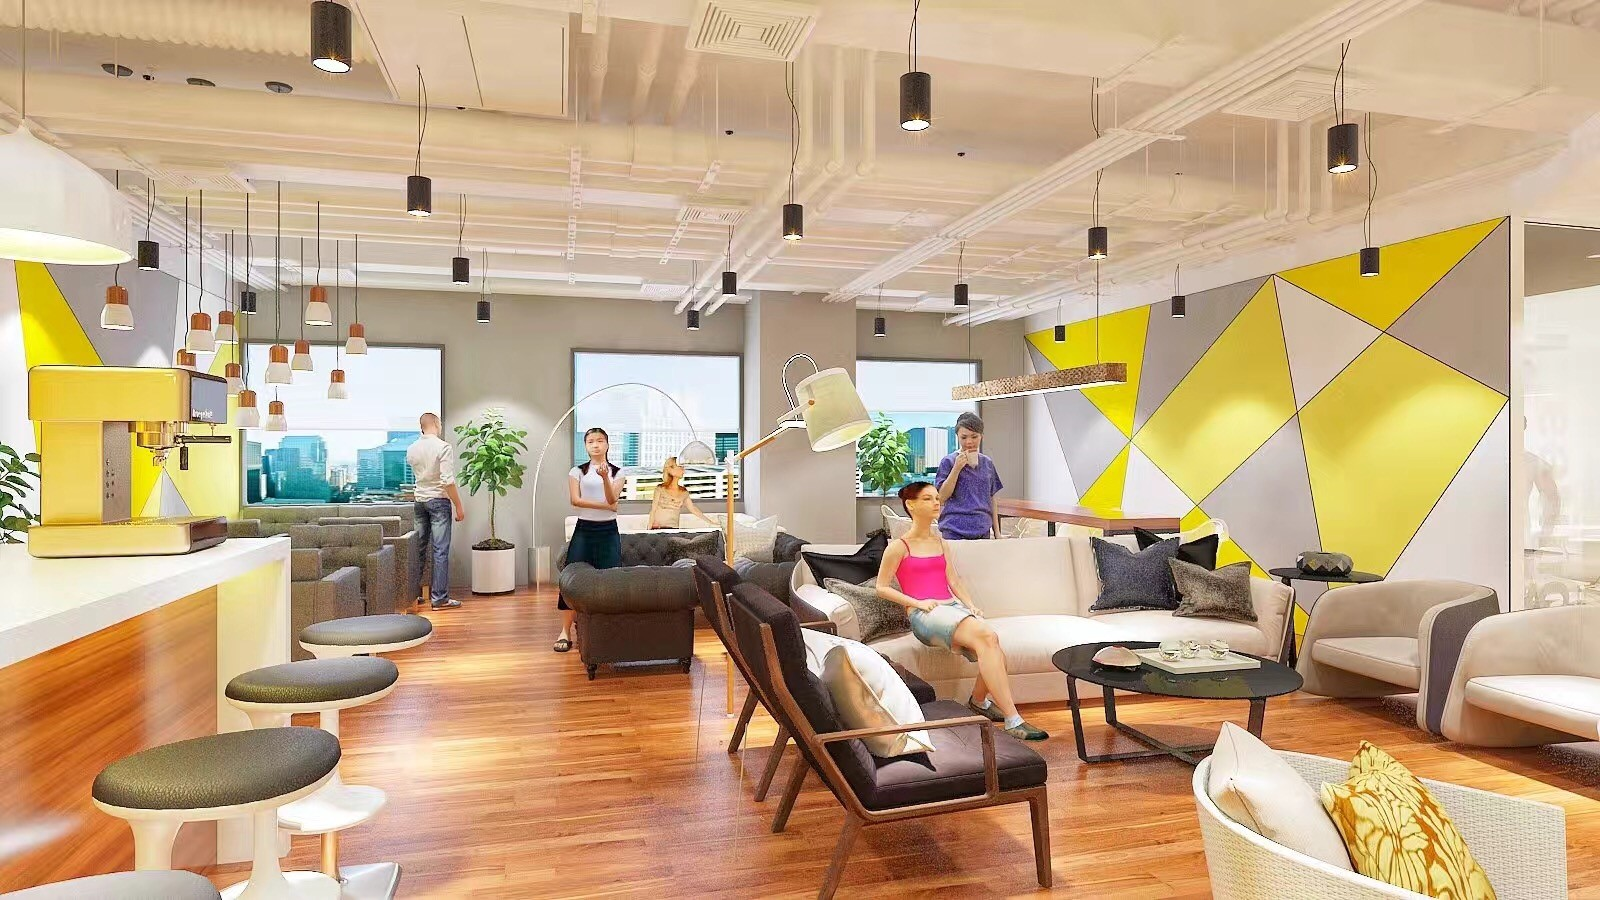 Artist's impression of Ucommune's upcoming co-working space at Suntec City